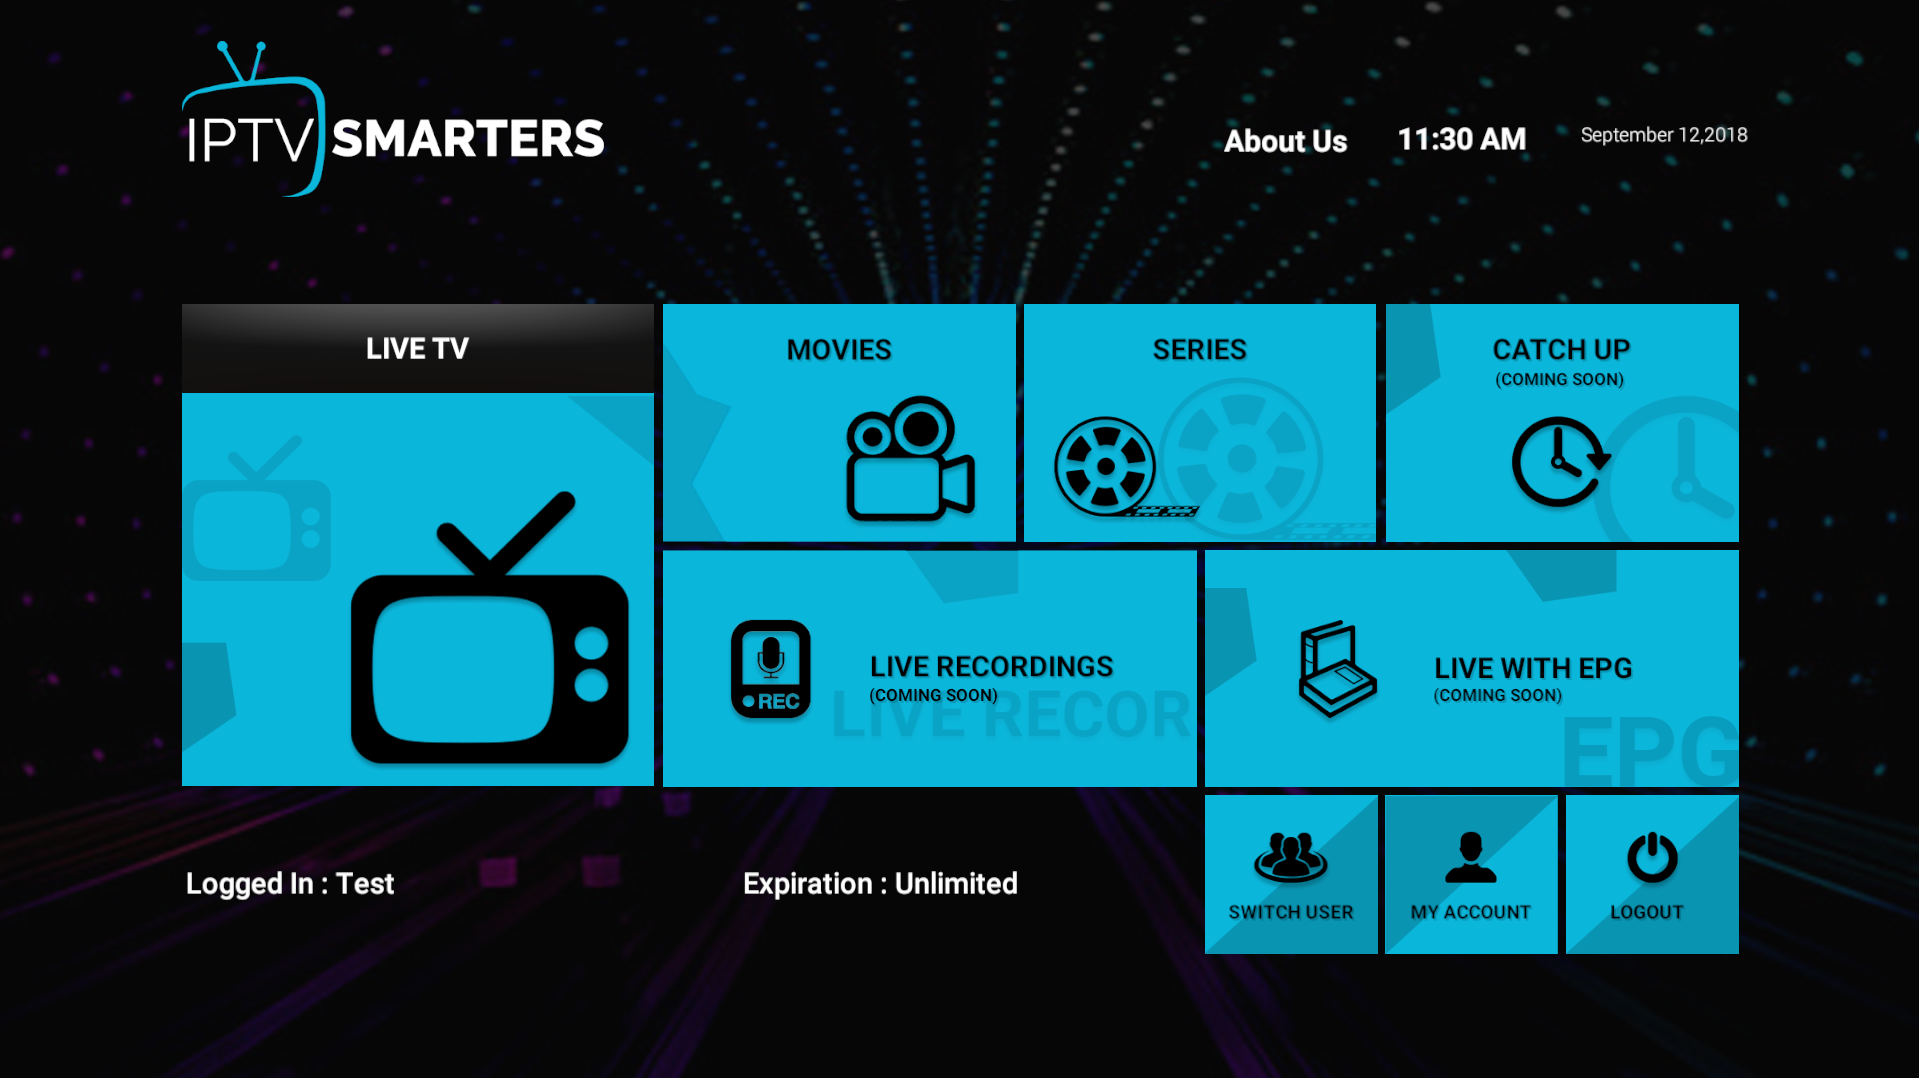 IPTV App for Windows IPTV Smarters Windows App WHMCS